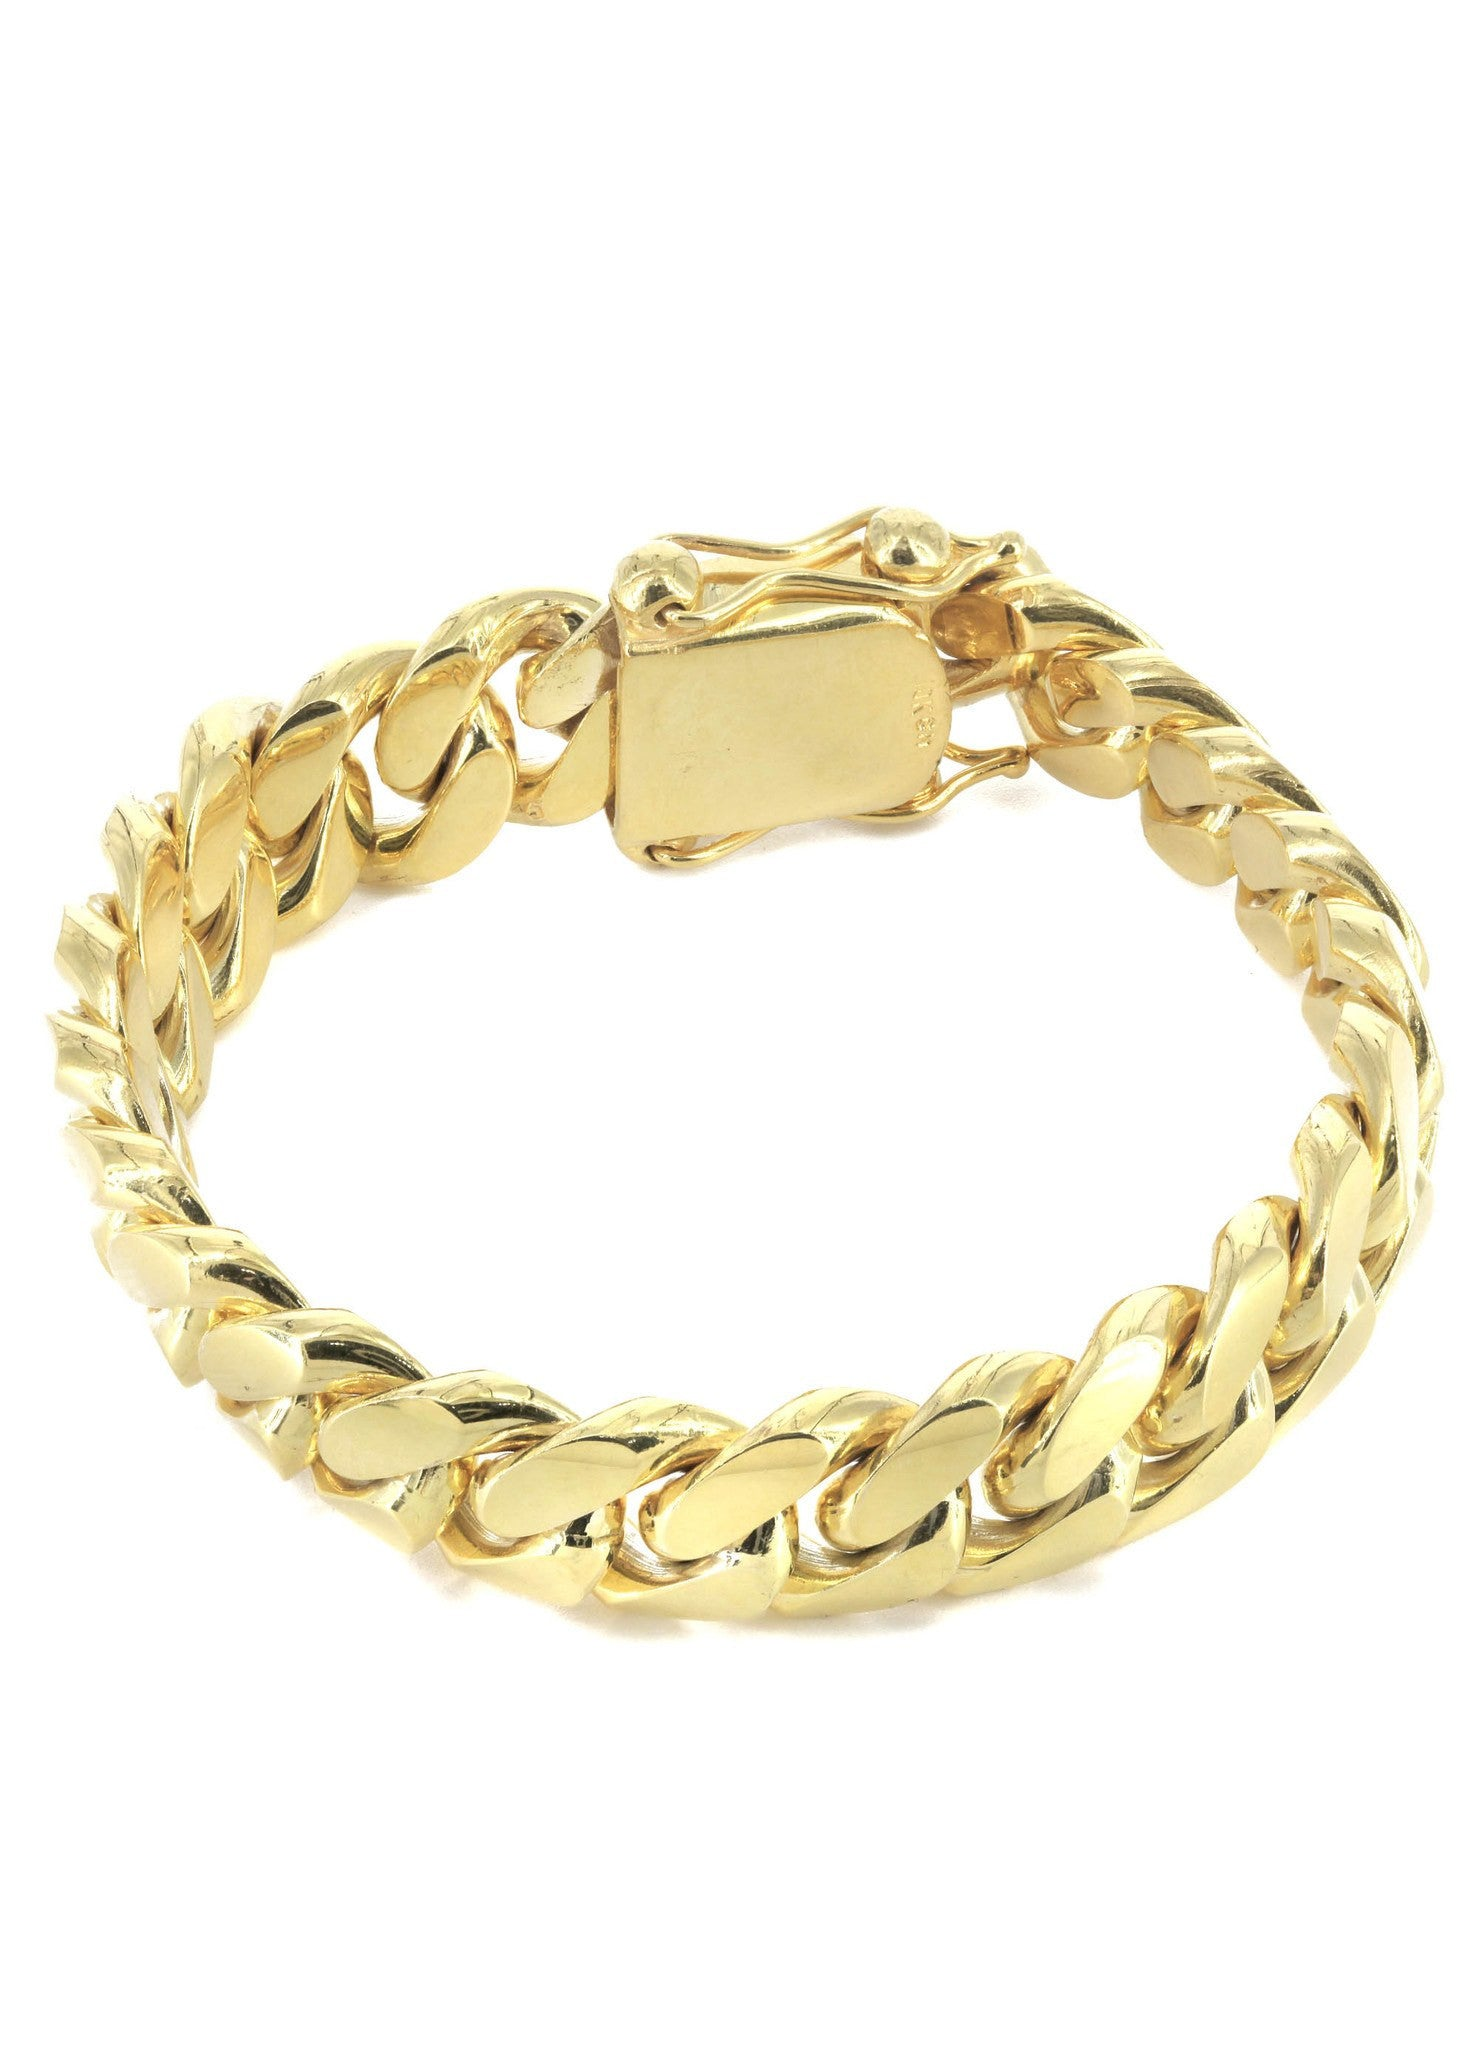 2341c4f758a 14K Gold Bracelet Solid Miami Cuban Link – FrostNYC